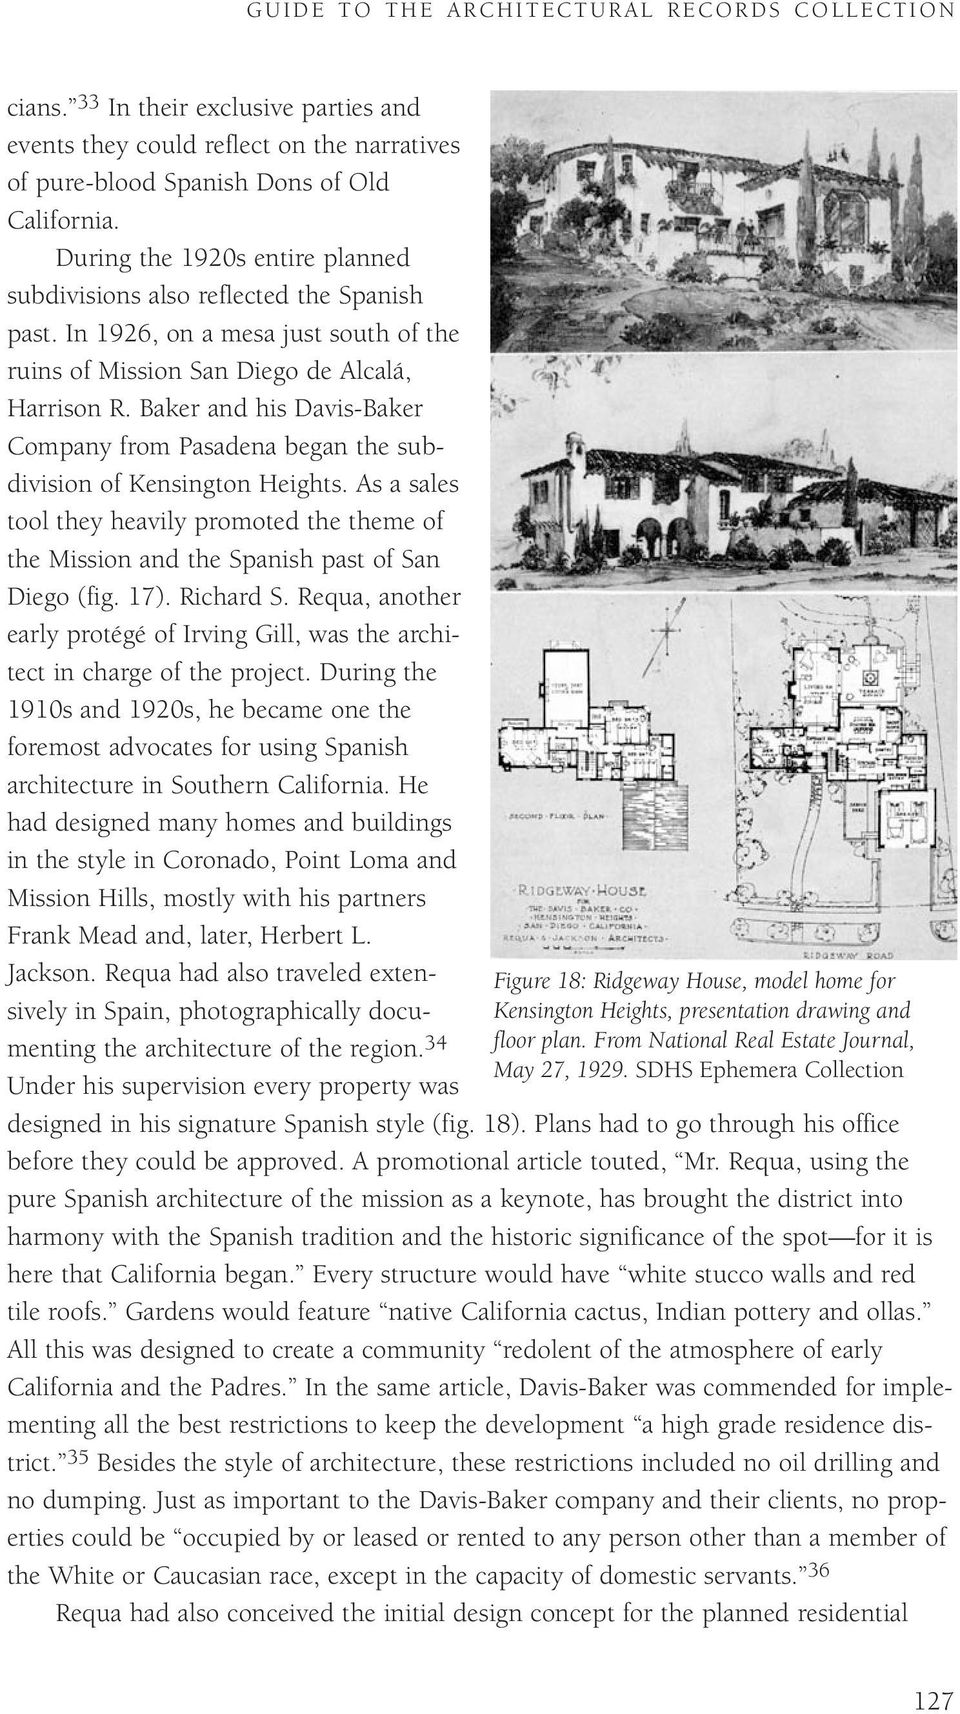 Baker and his Davis-Baker Company from Pasadena began the subdivision of Kensington Heights. As a sales tool they heavily promoted the theme of the Mission and the Spanish past of San Diego (fig. 17).